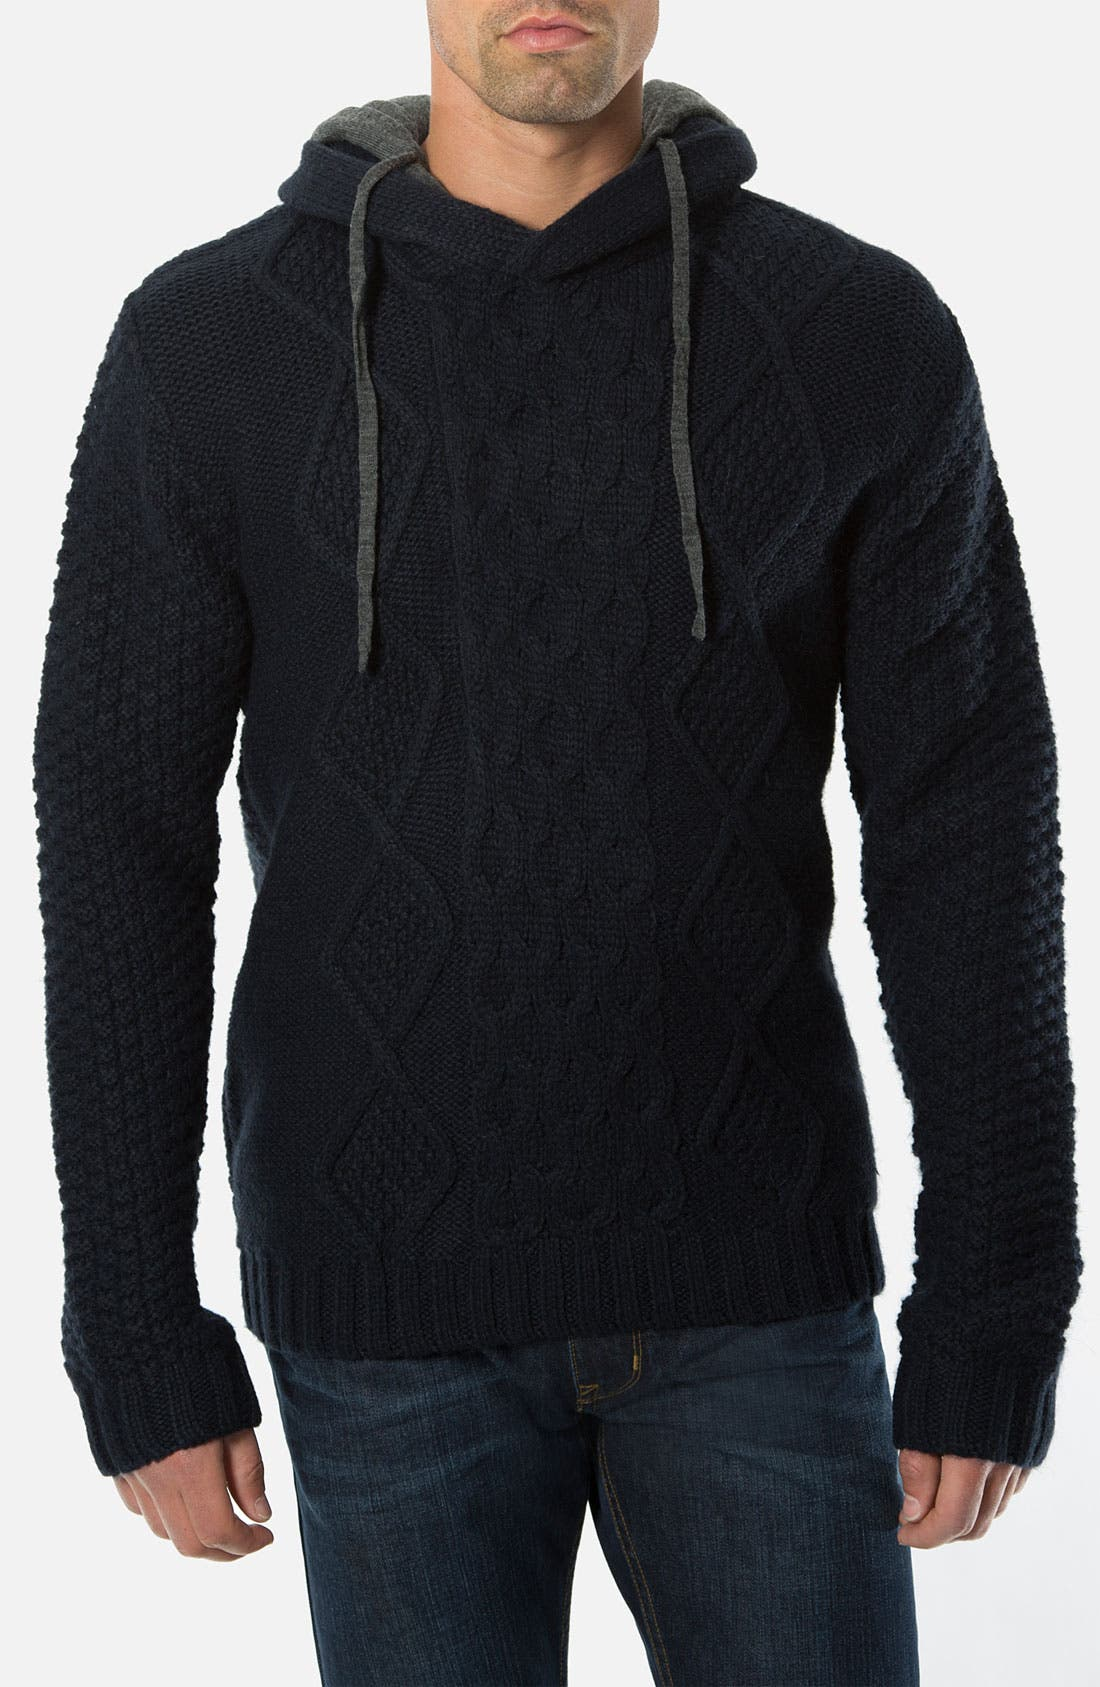 Alternate Image 1 Selected - 7 Diamonds 'Portillo' Cable Knit Sweater with Removable Hood